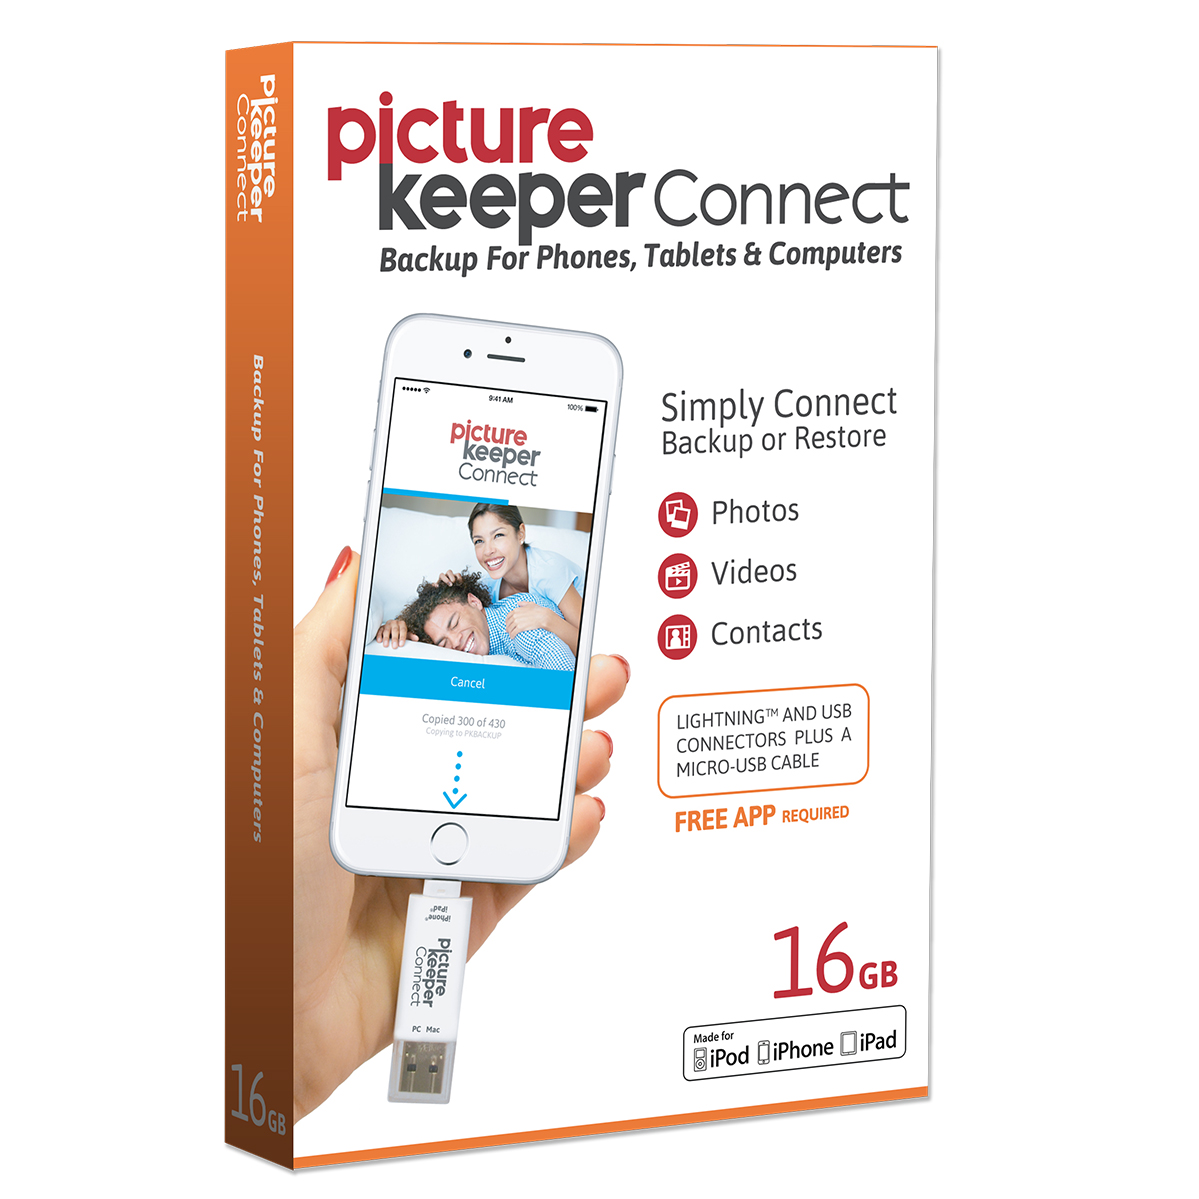 Picture Keeper CONNECT 16GB Portable Flash Drive Mobile Phone Tablet and Computer Photo Backup USB Device